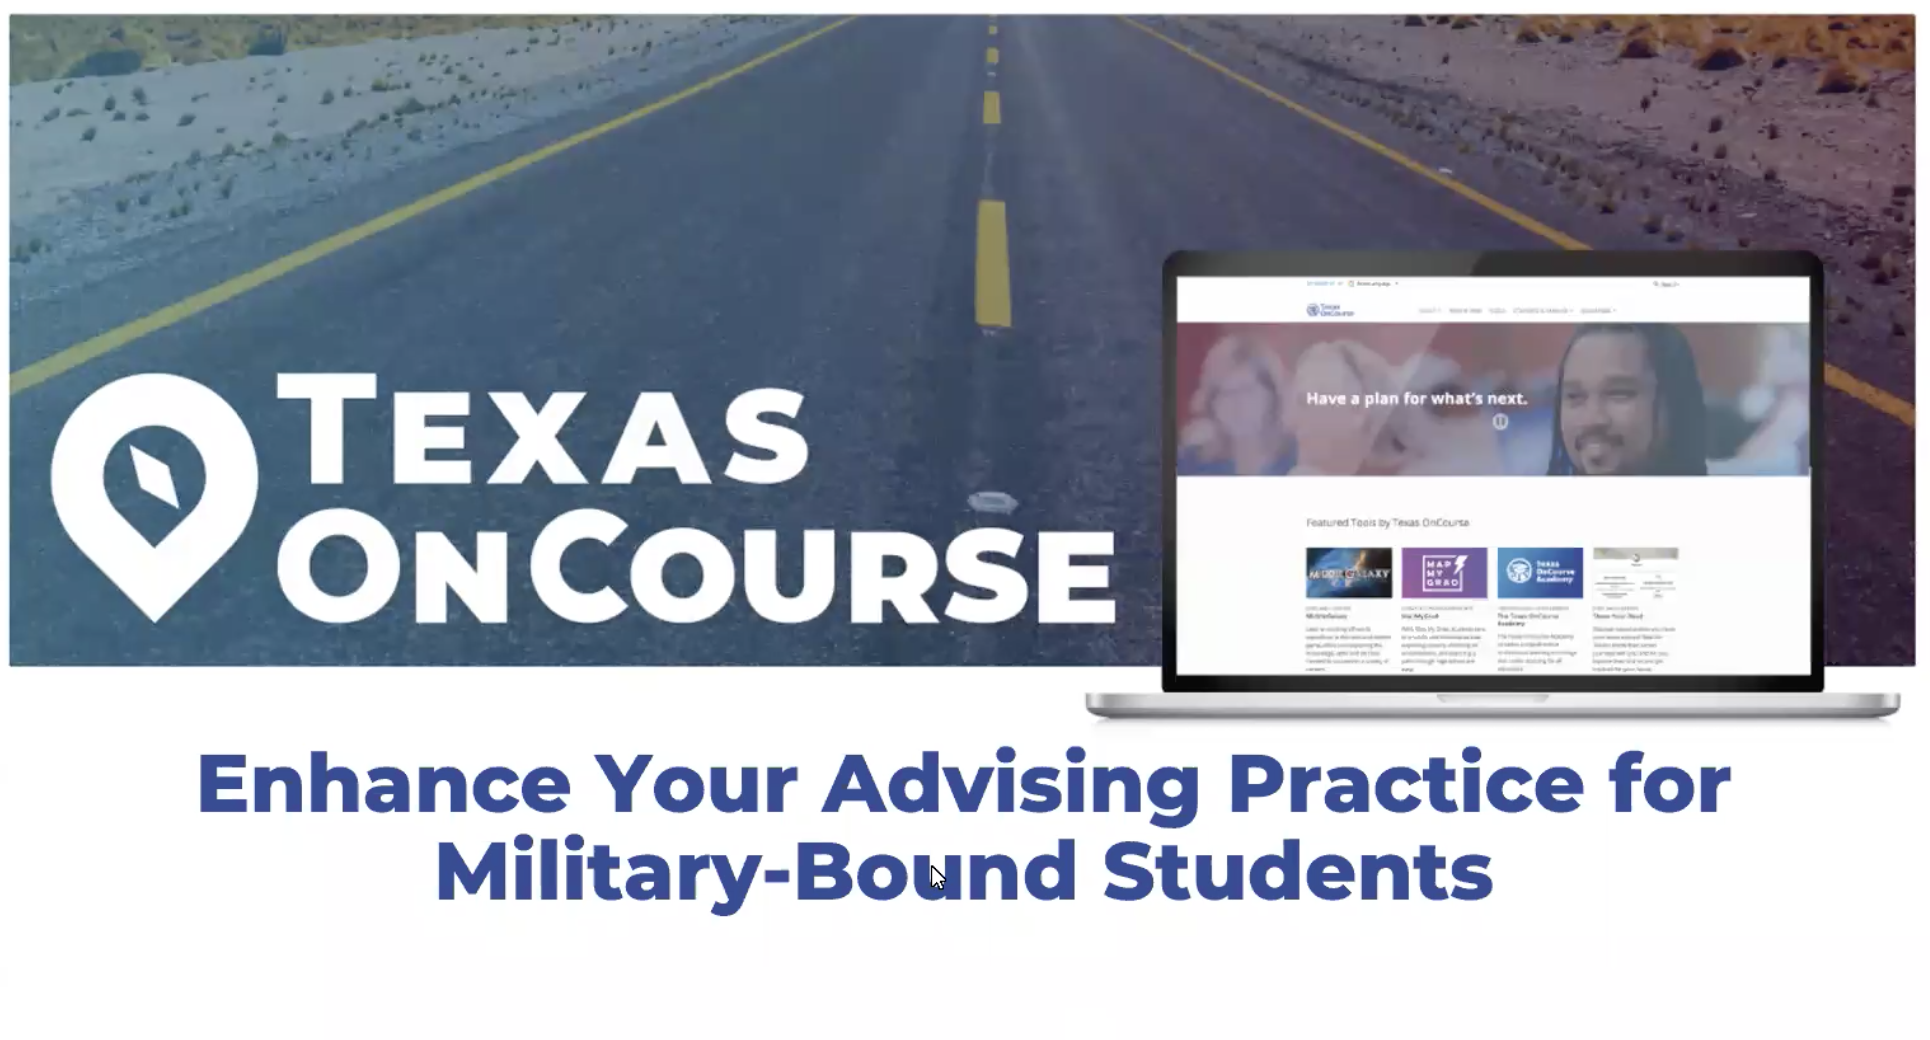 Enhance Your Advising Practice for Military-Bound Students